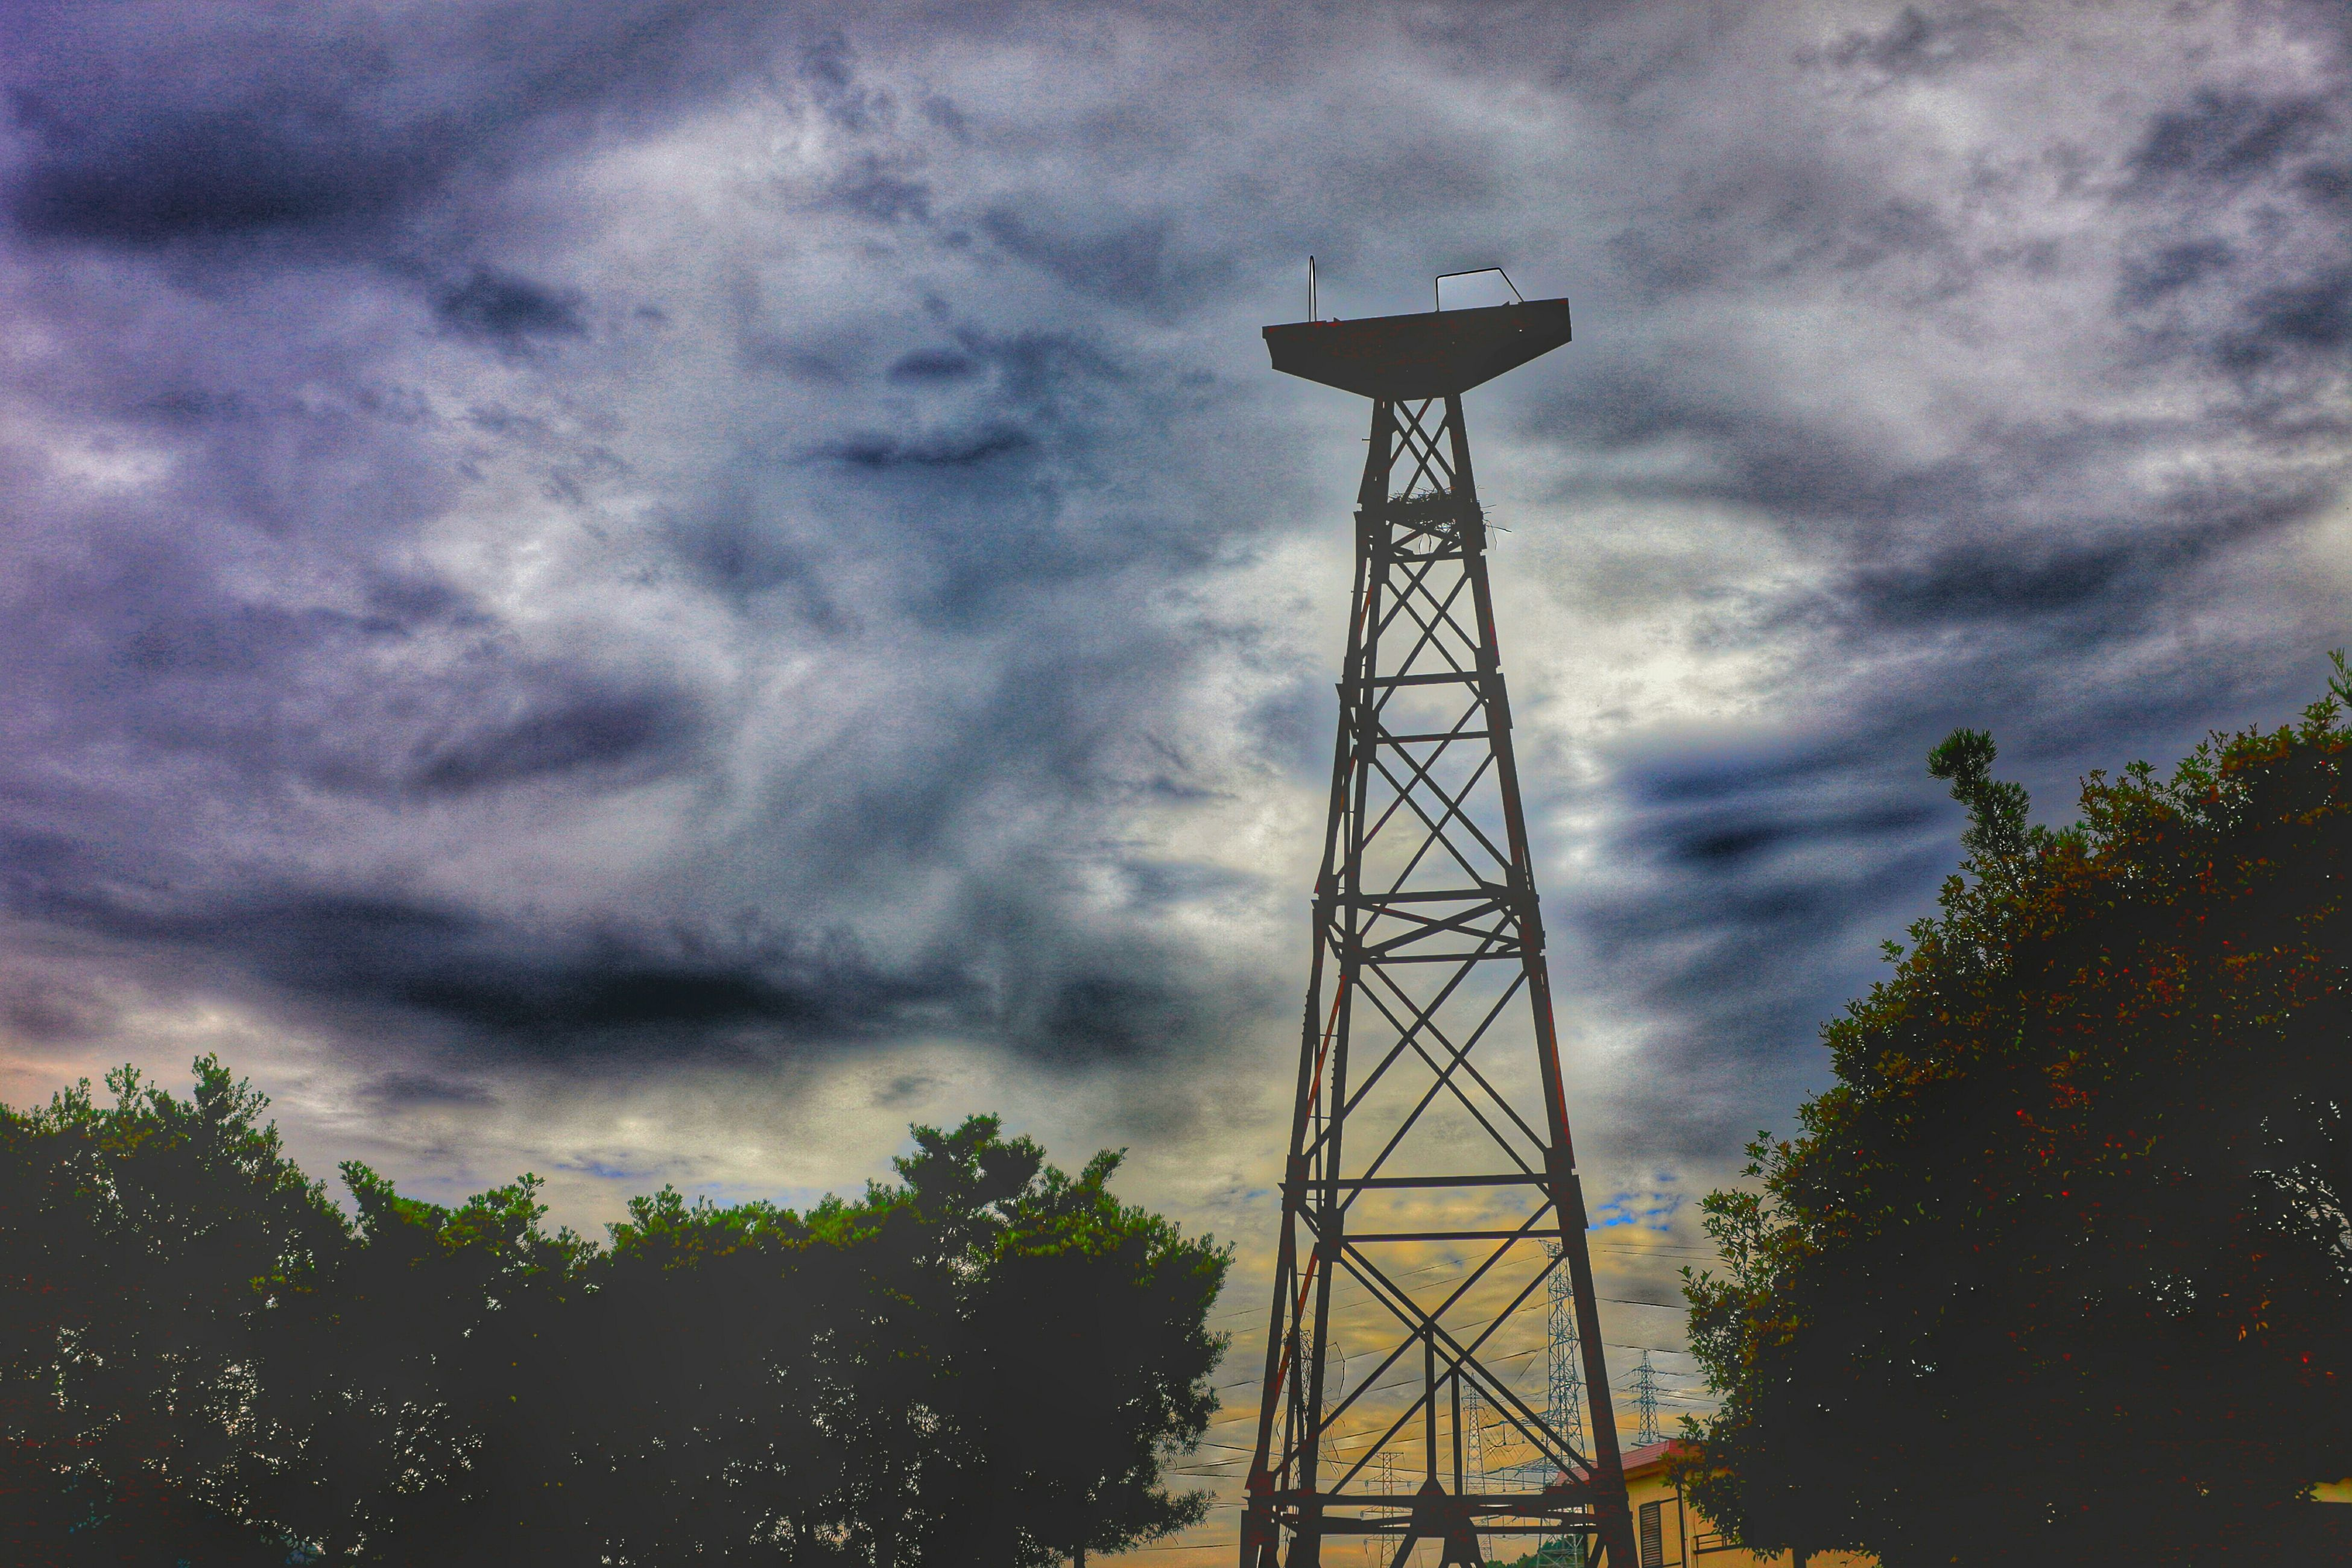 low angle view, sky, cloud - sky, cloudy, tree, silhouette, overcast, weather, connection, cloud, dusk, electricity pylon, tall - high, built structure, technology, electricity, nature, fuel and power generation, outdoors, metal